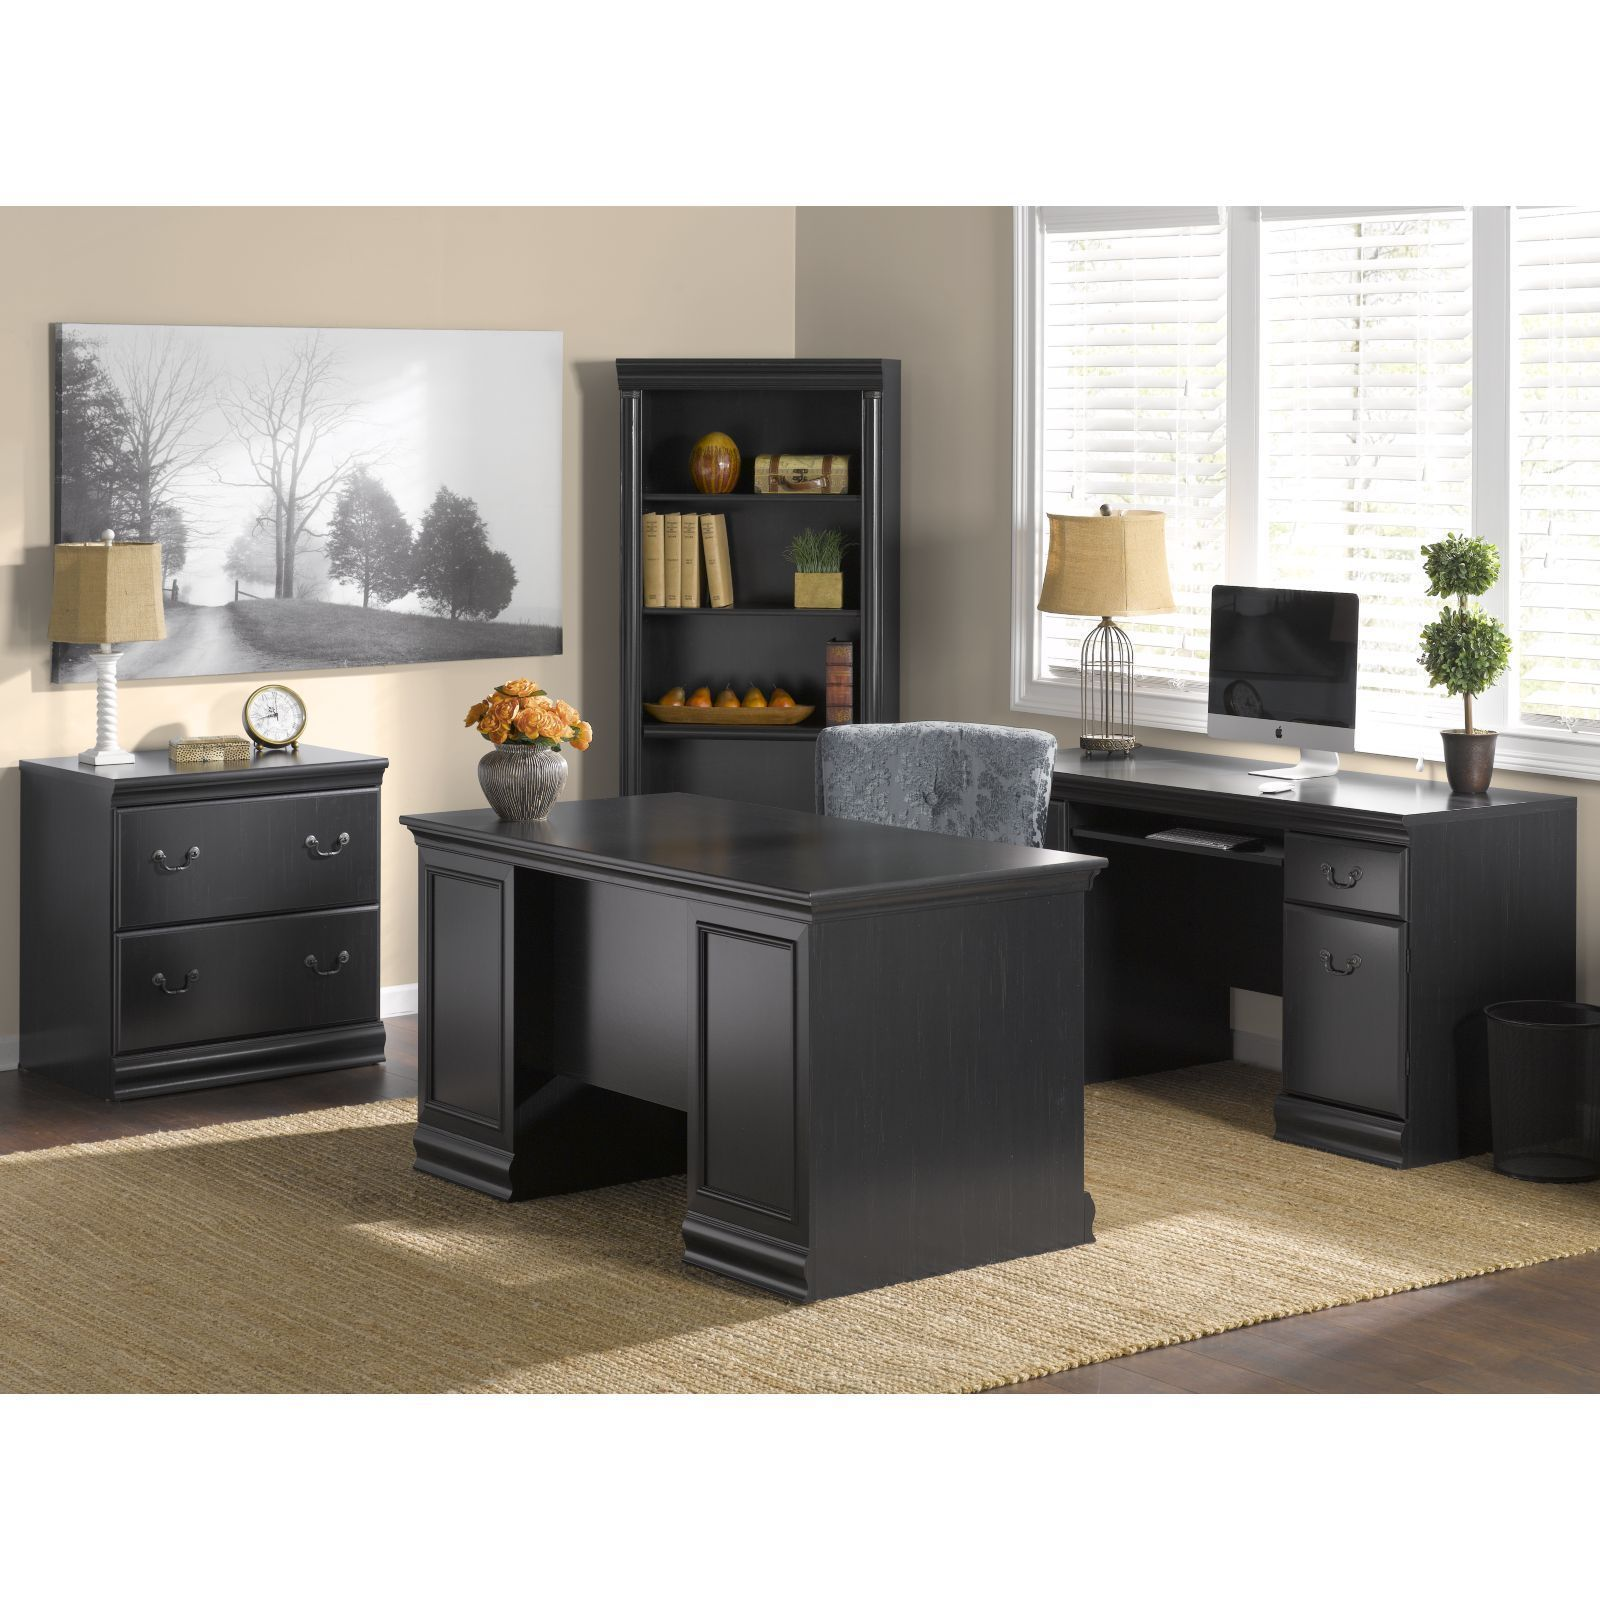 along furniture storage particular depot wood melamine black wheaton ideas shaped lummy sauder with desks desk h bush consruction stand home fashionable l free staples sleek ar office zq and engineered computer